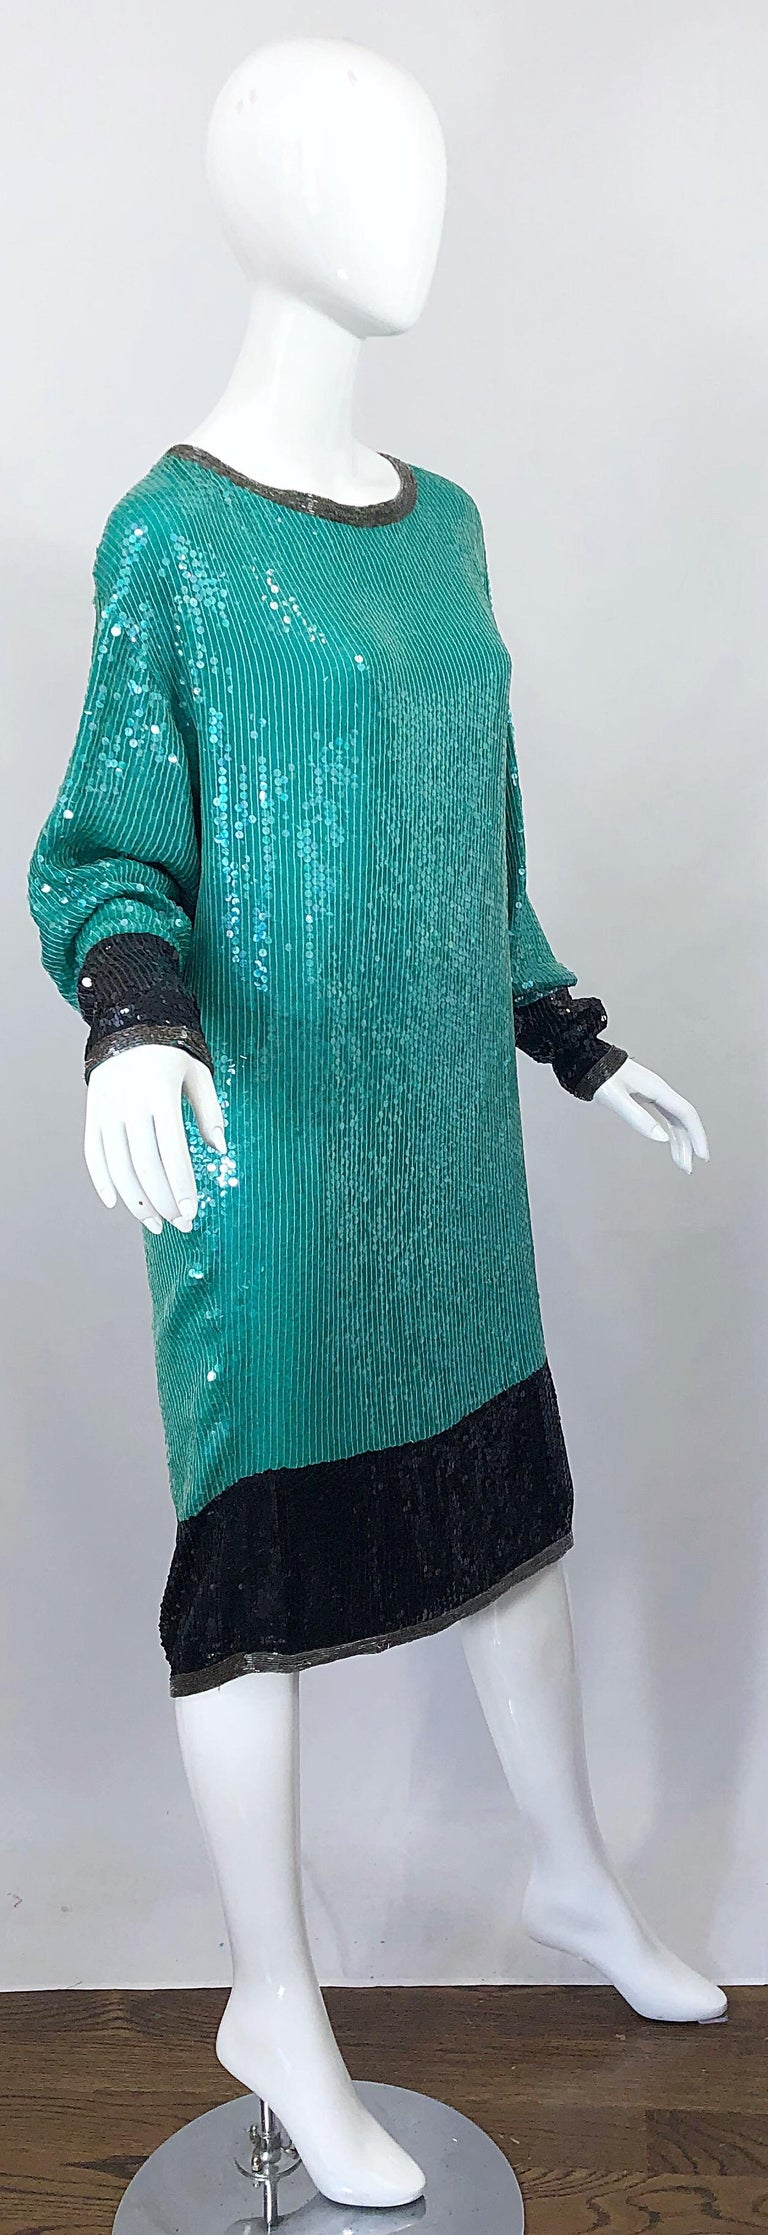 1970s HALSTON Teal Blue / Green + Black Sequined Beaded Dolman Sleeve Silk Dress For Sale 10